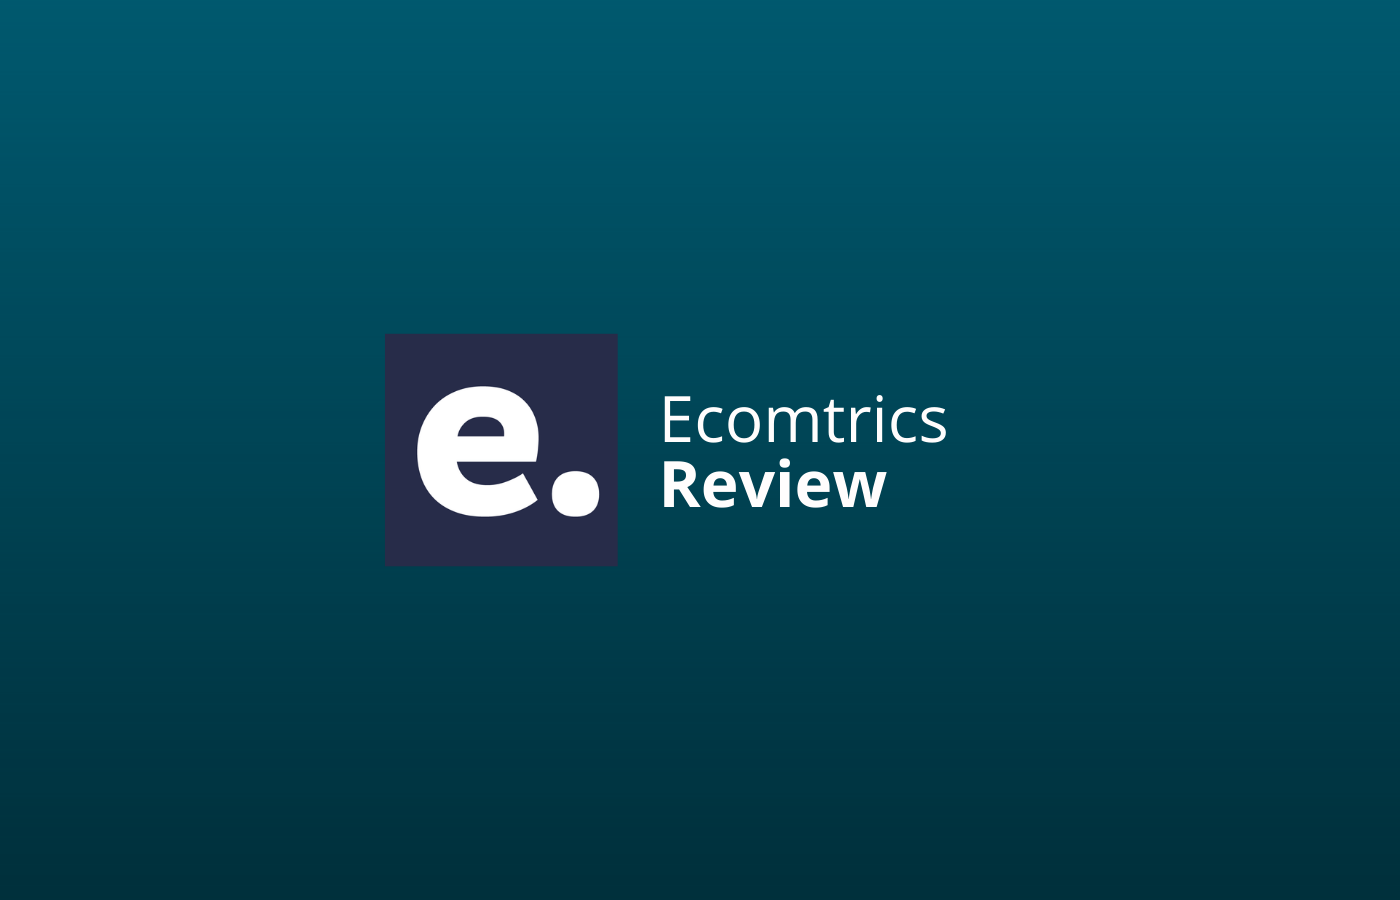 ecomtrics review ervaringen